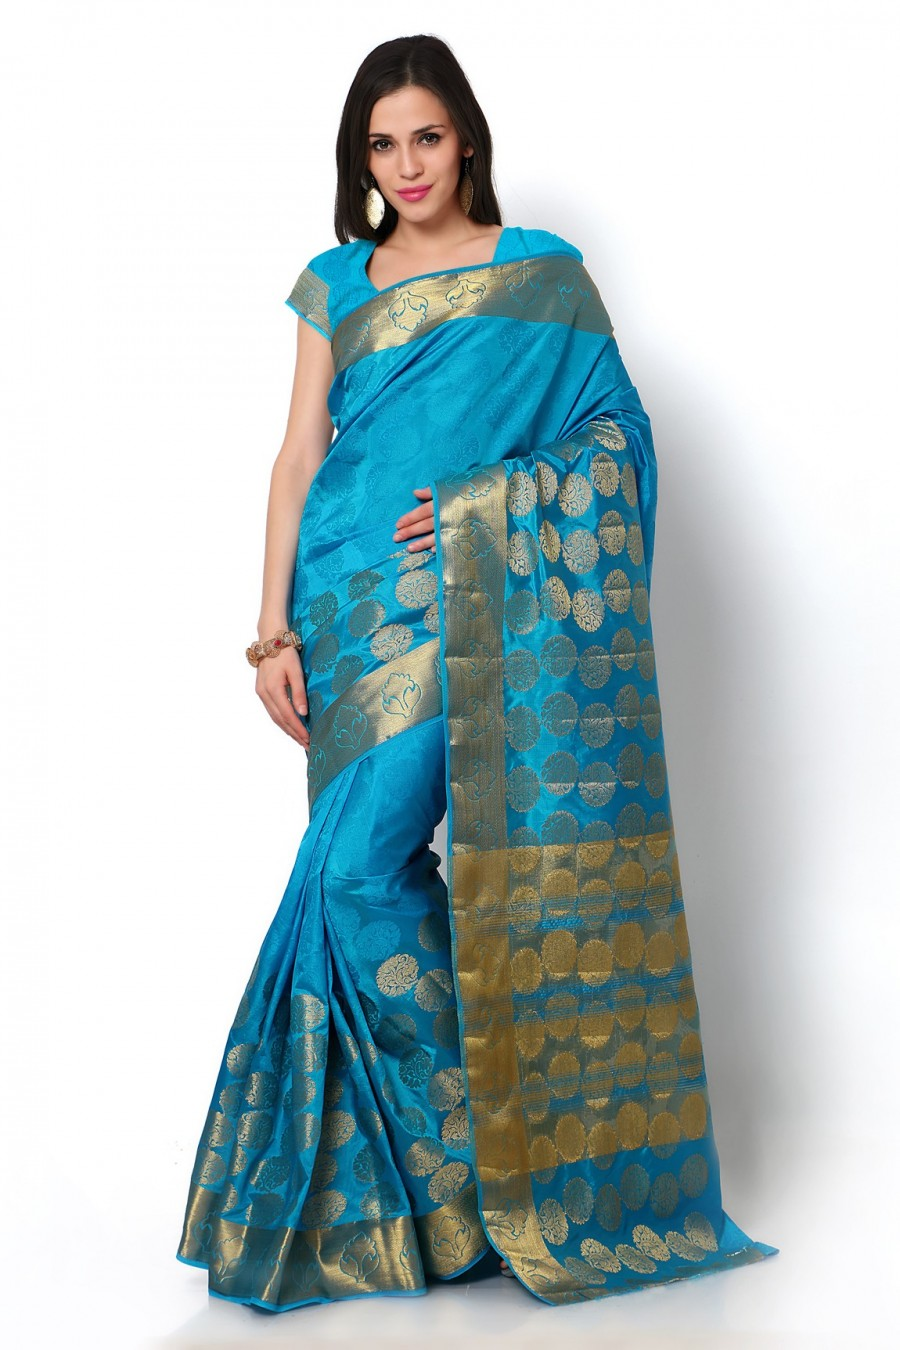 Buy Blue Dupioni Silk Saree with Blouse Piece Online